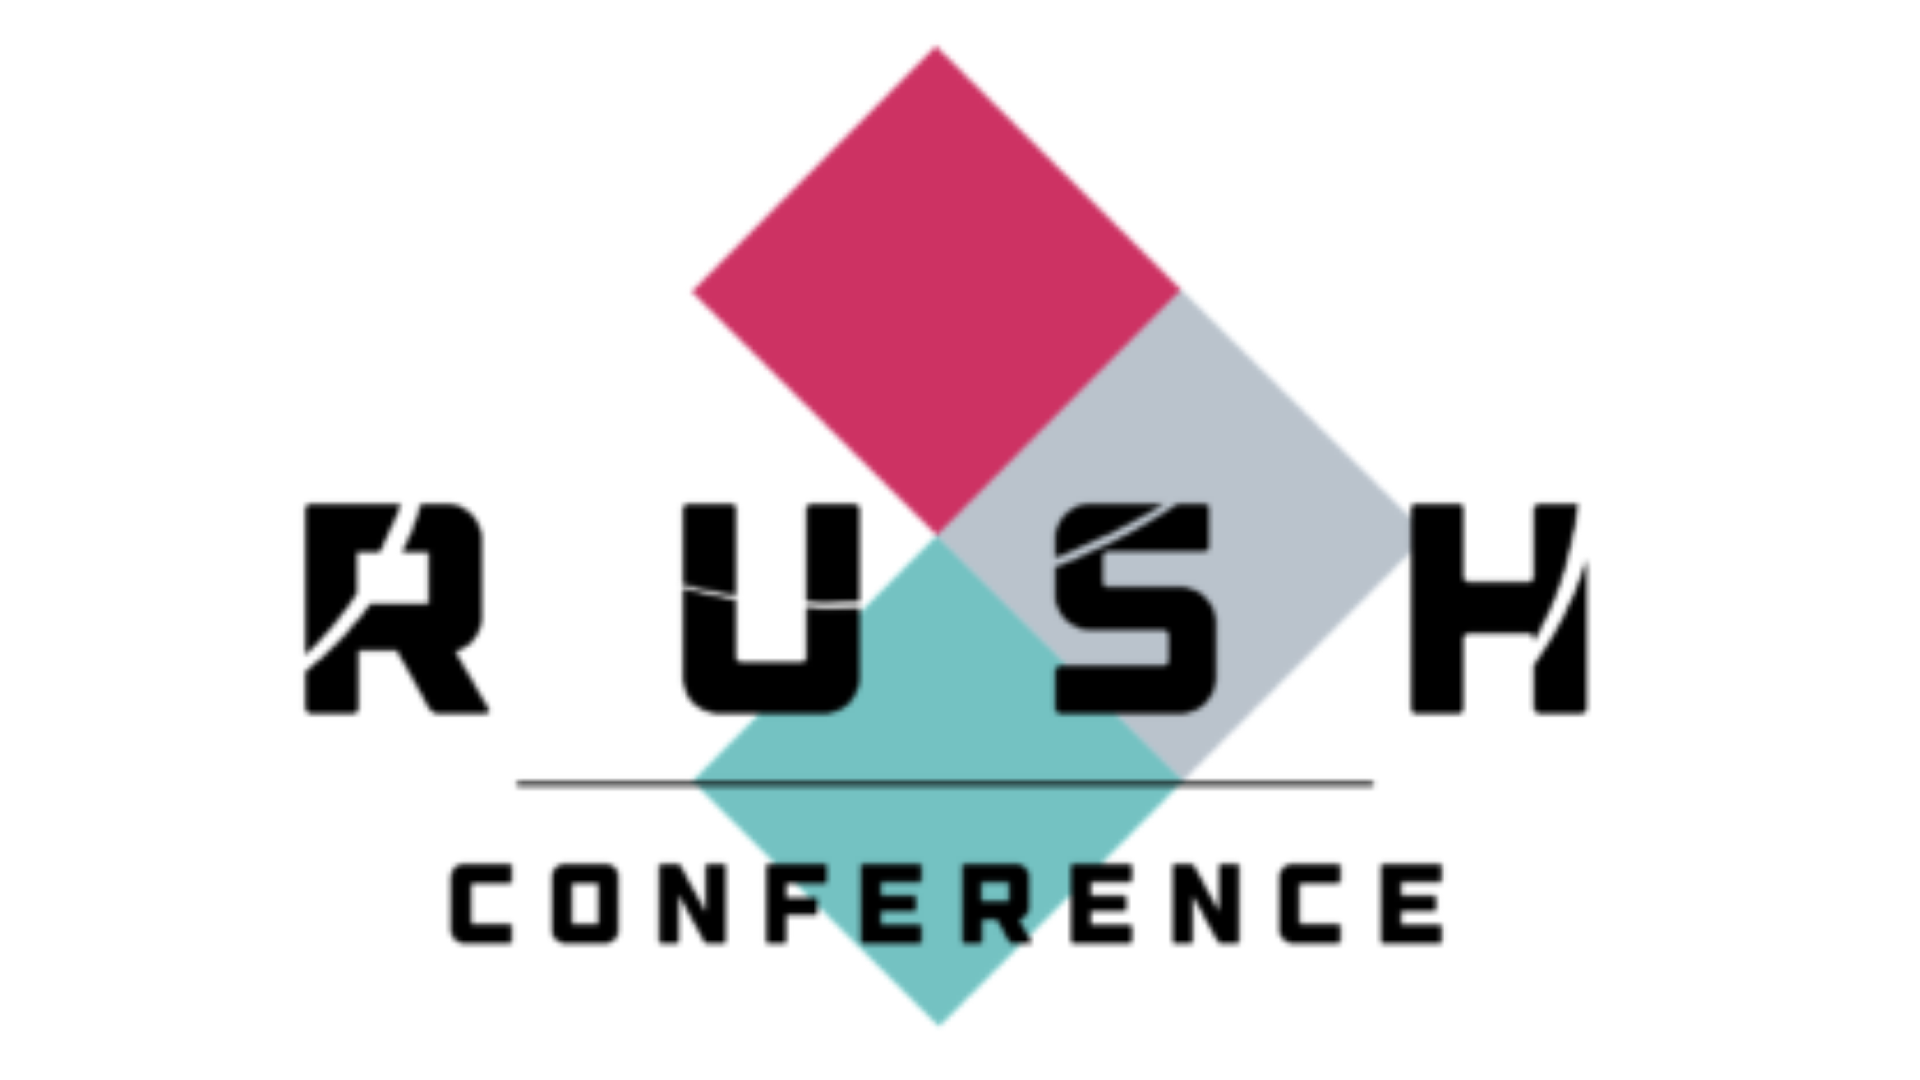 Planning Center - SM Rush Conference image